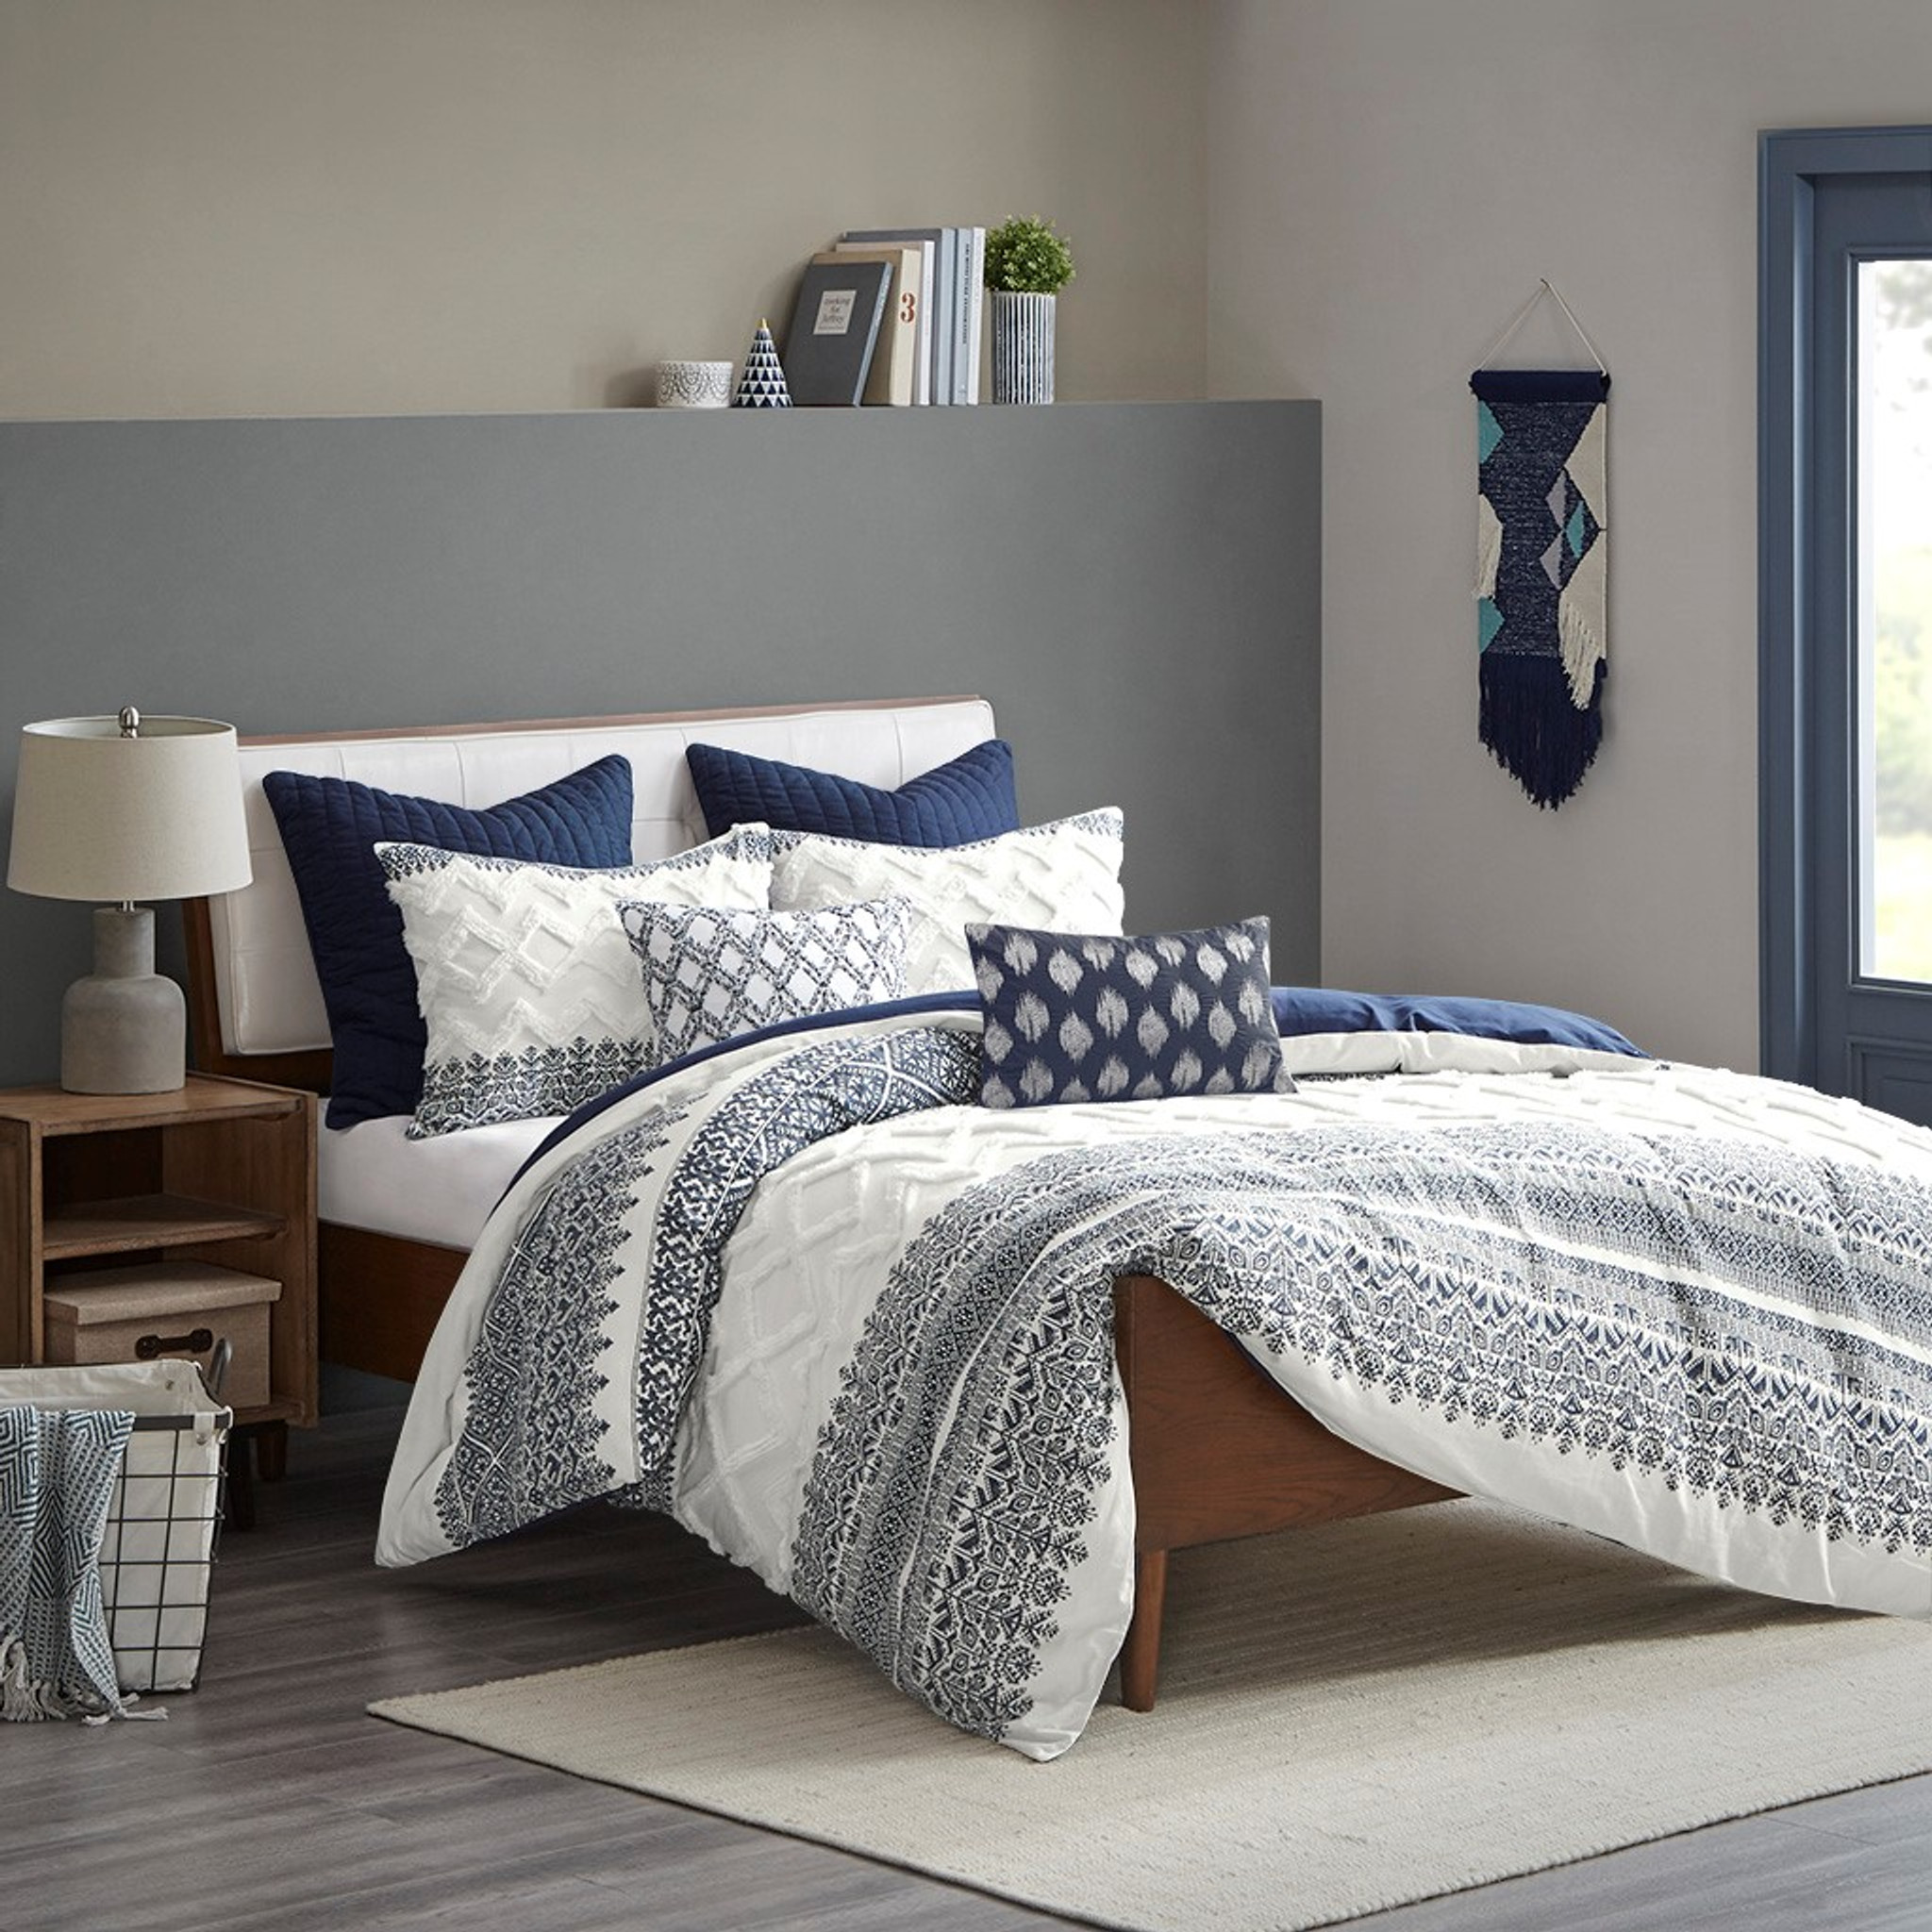 malibu boho navy and white comforter set king